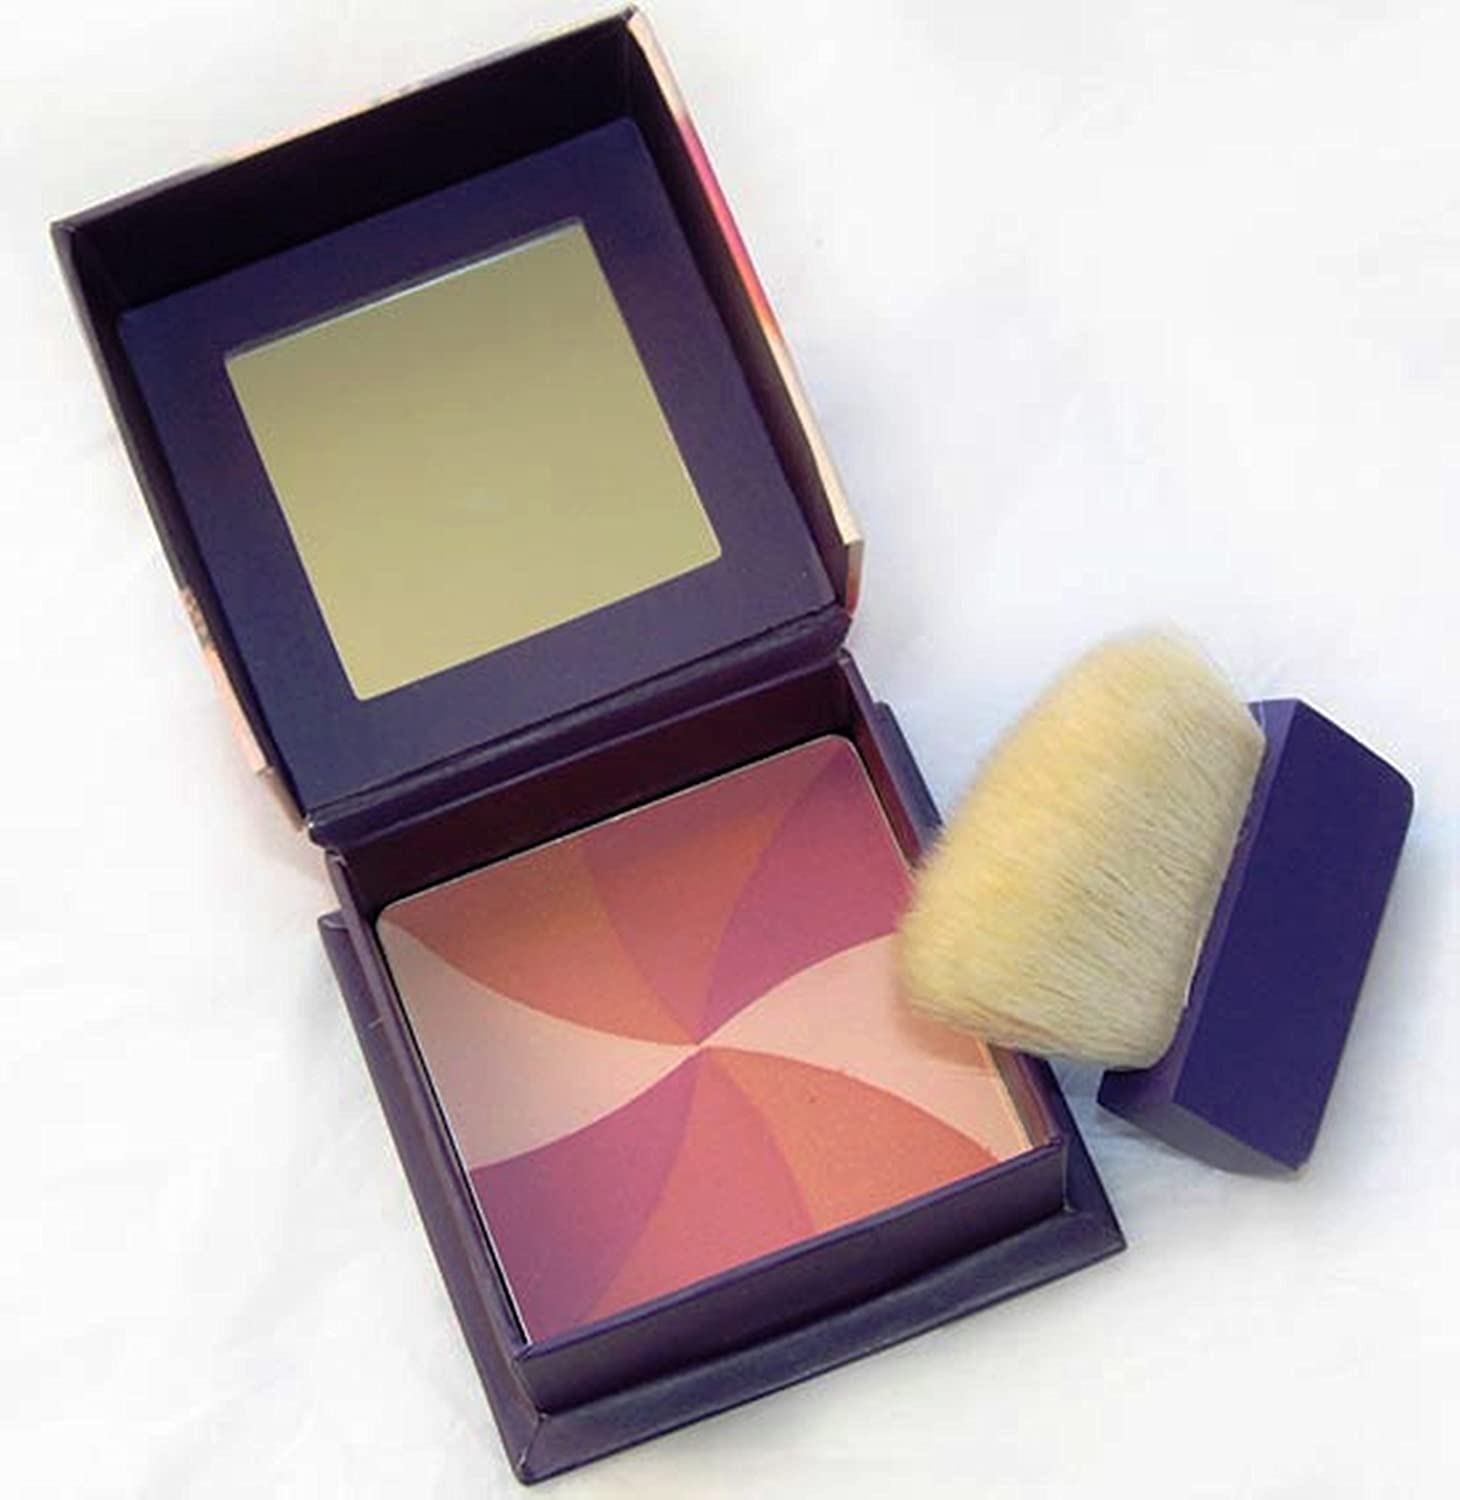 Benefit - Colorete blush hervana